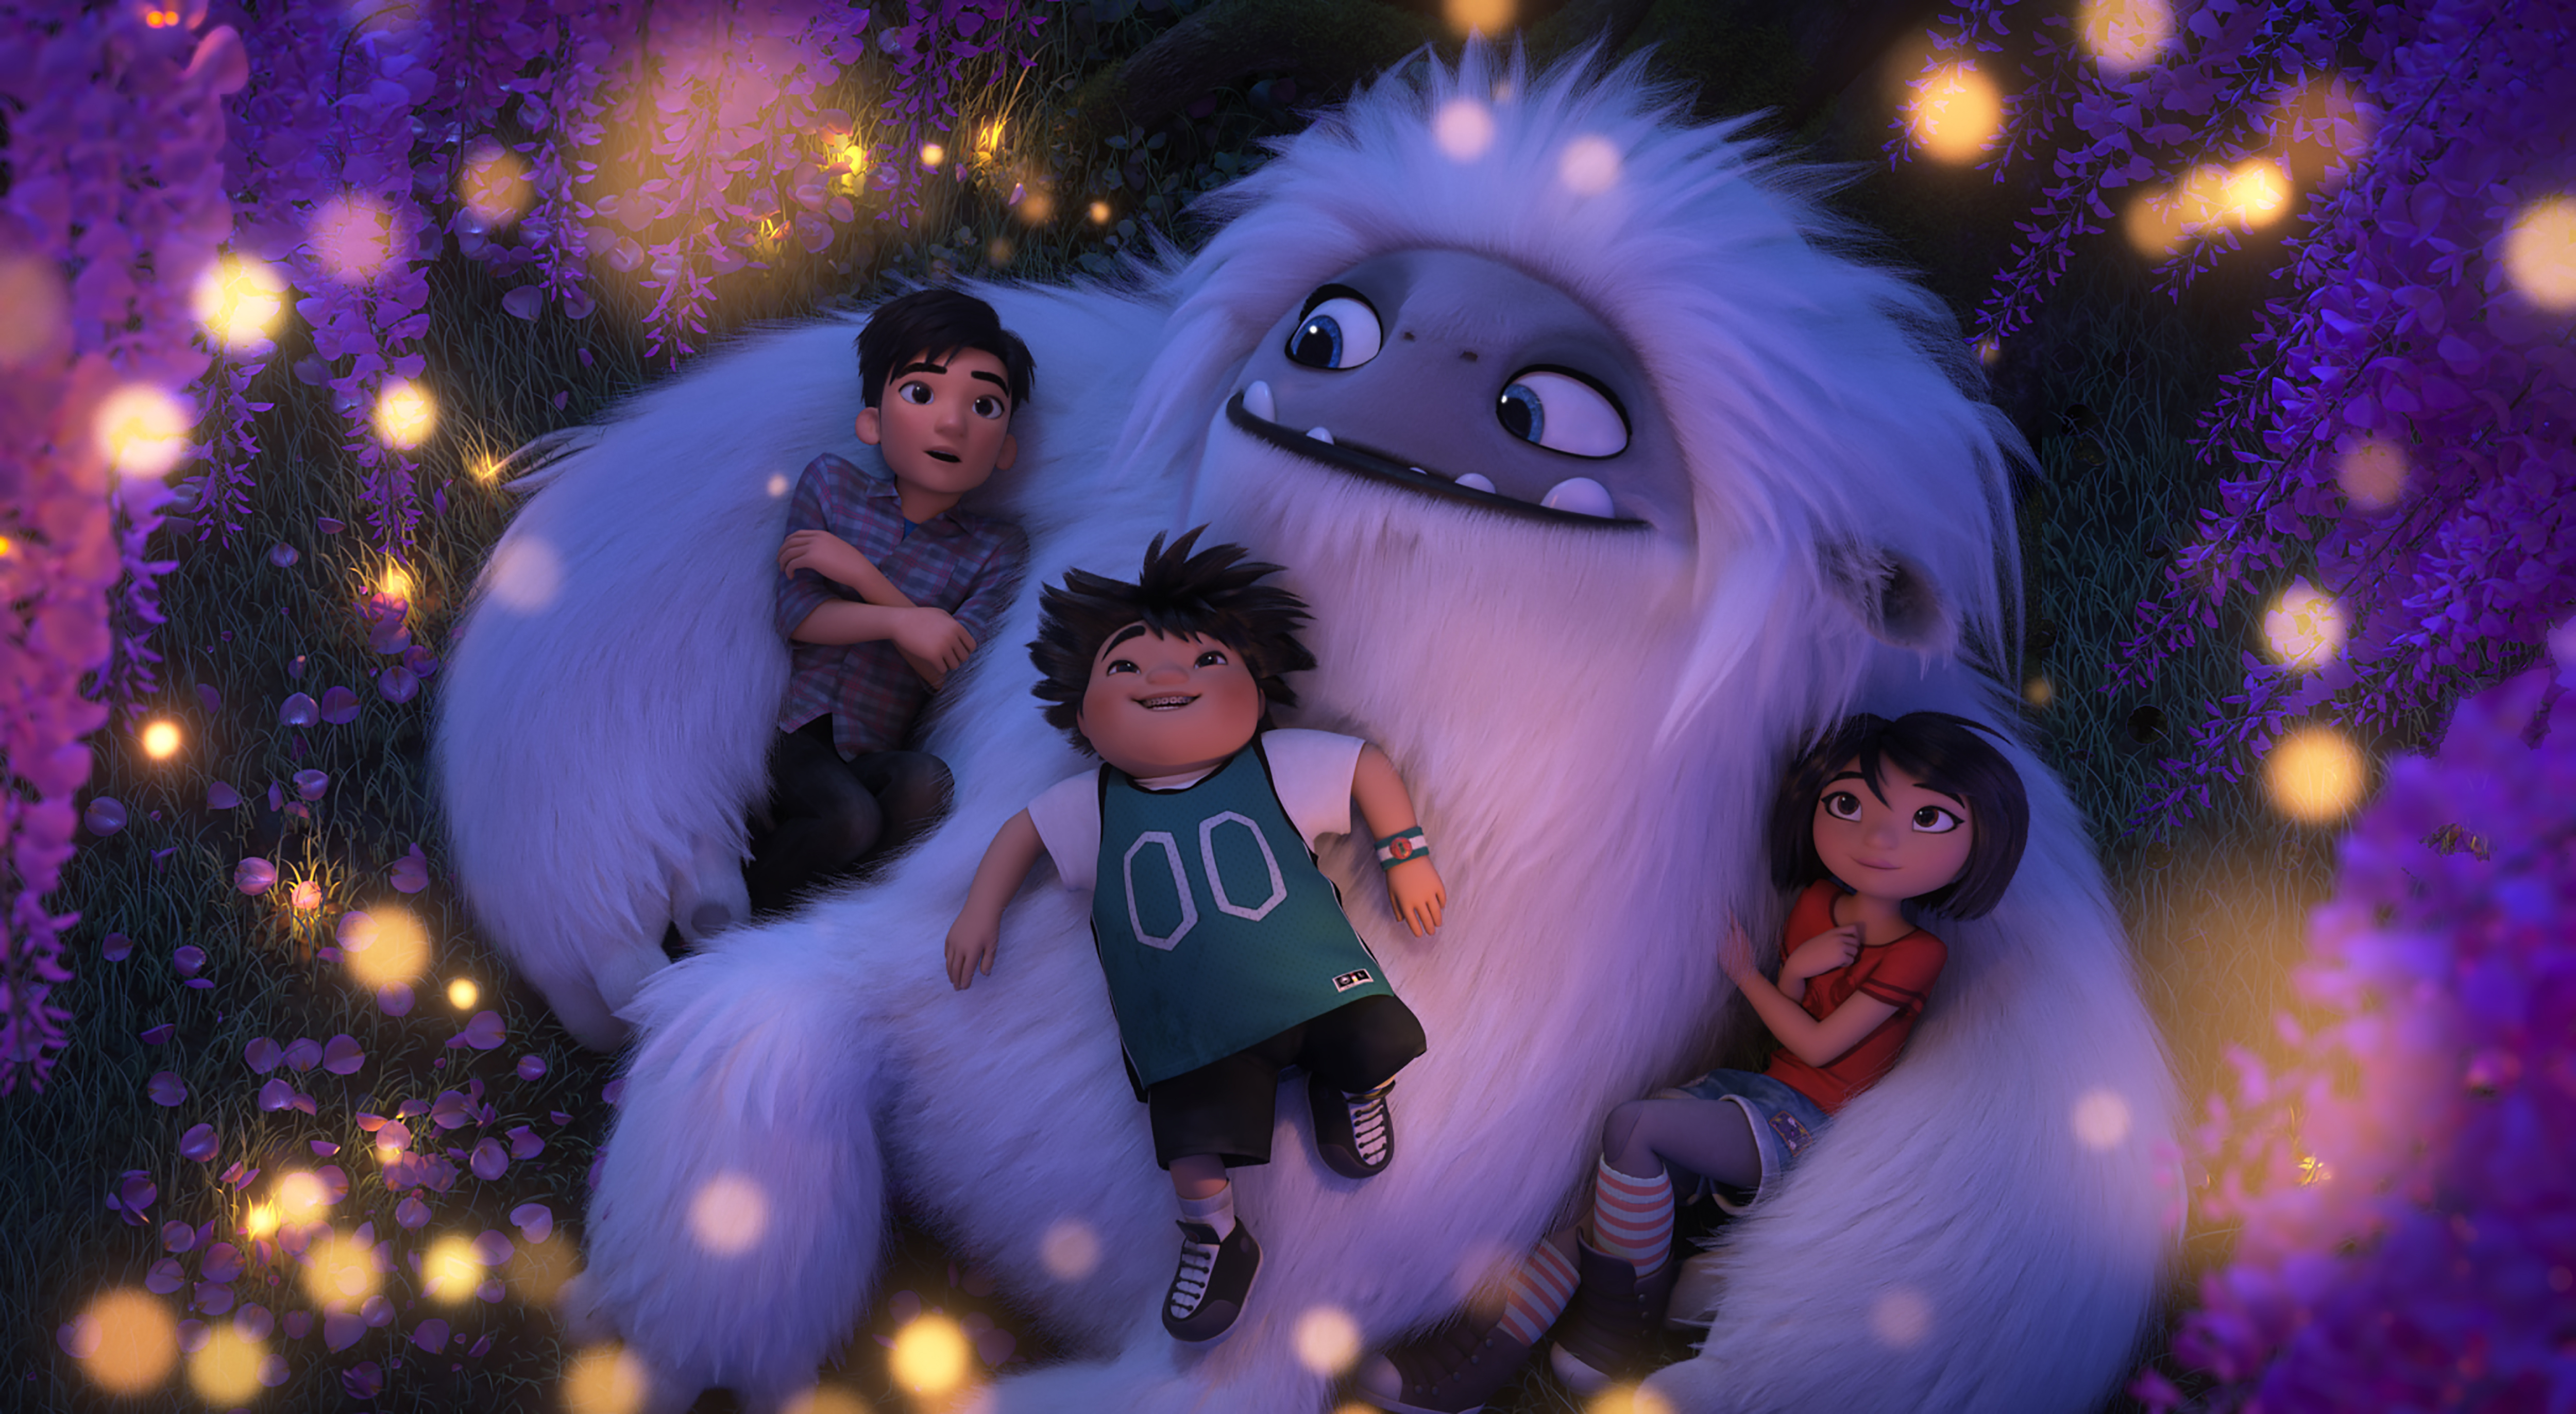 'Abominable' Brings All the Charm in This Magical, Heartfelt Adventure